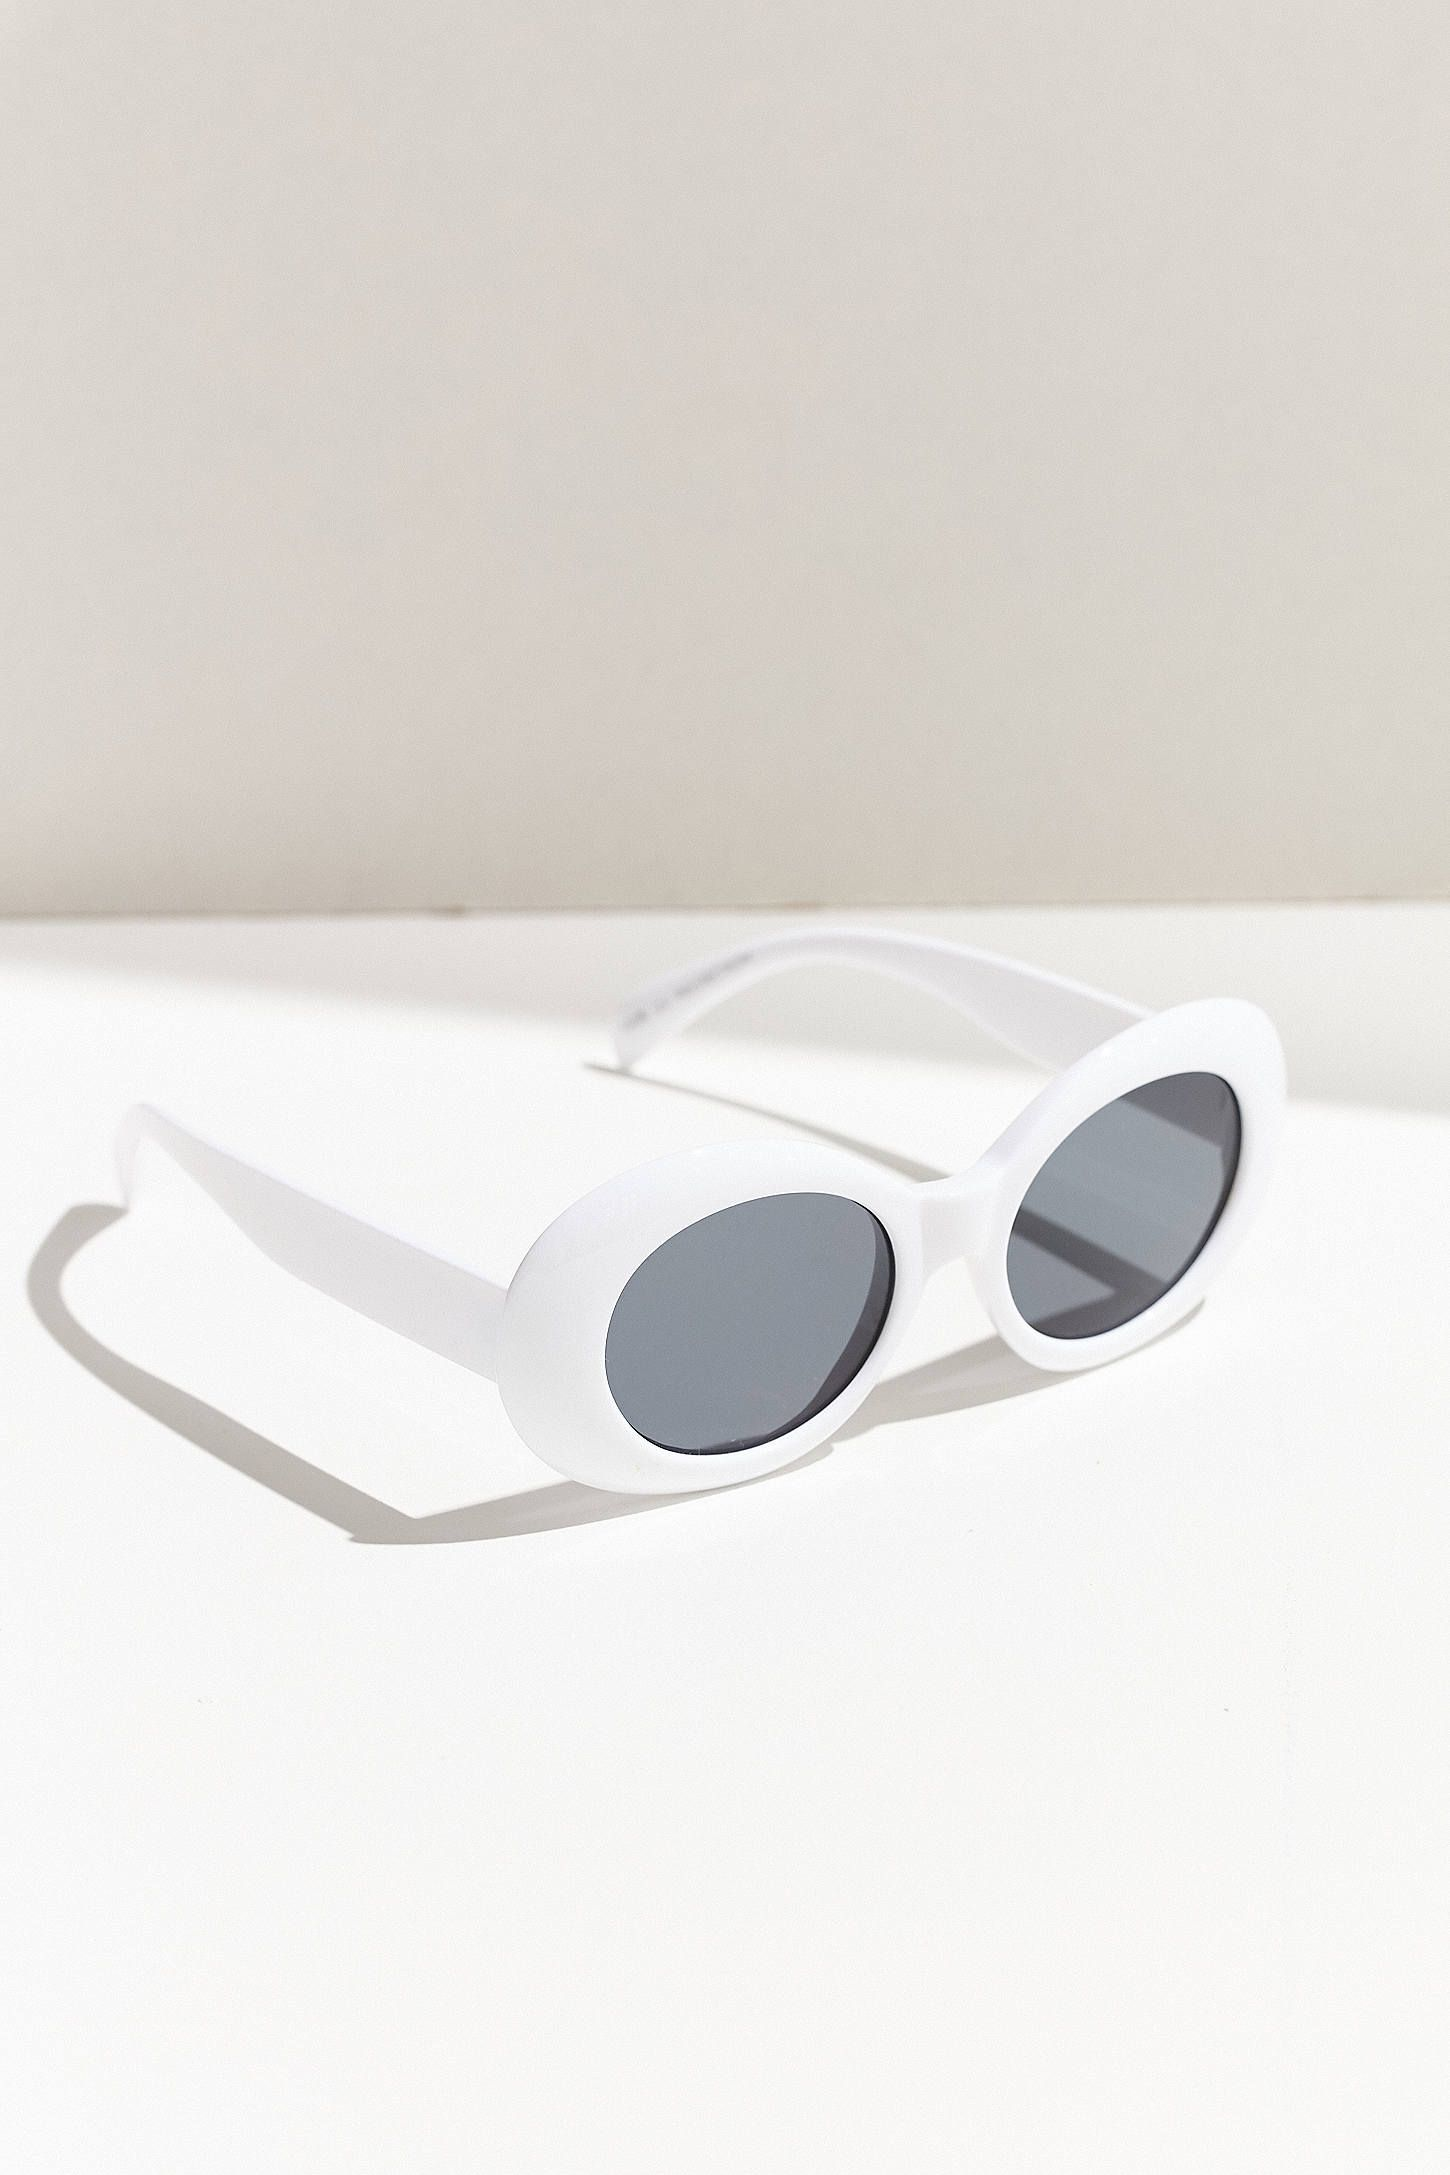 6edd9cdad6 Shop Venice Oval Sunglasses at Urban Outfitters today. We carry all the  latest styles, colors and brands for you to choose from right here.